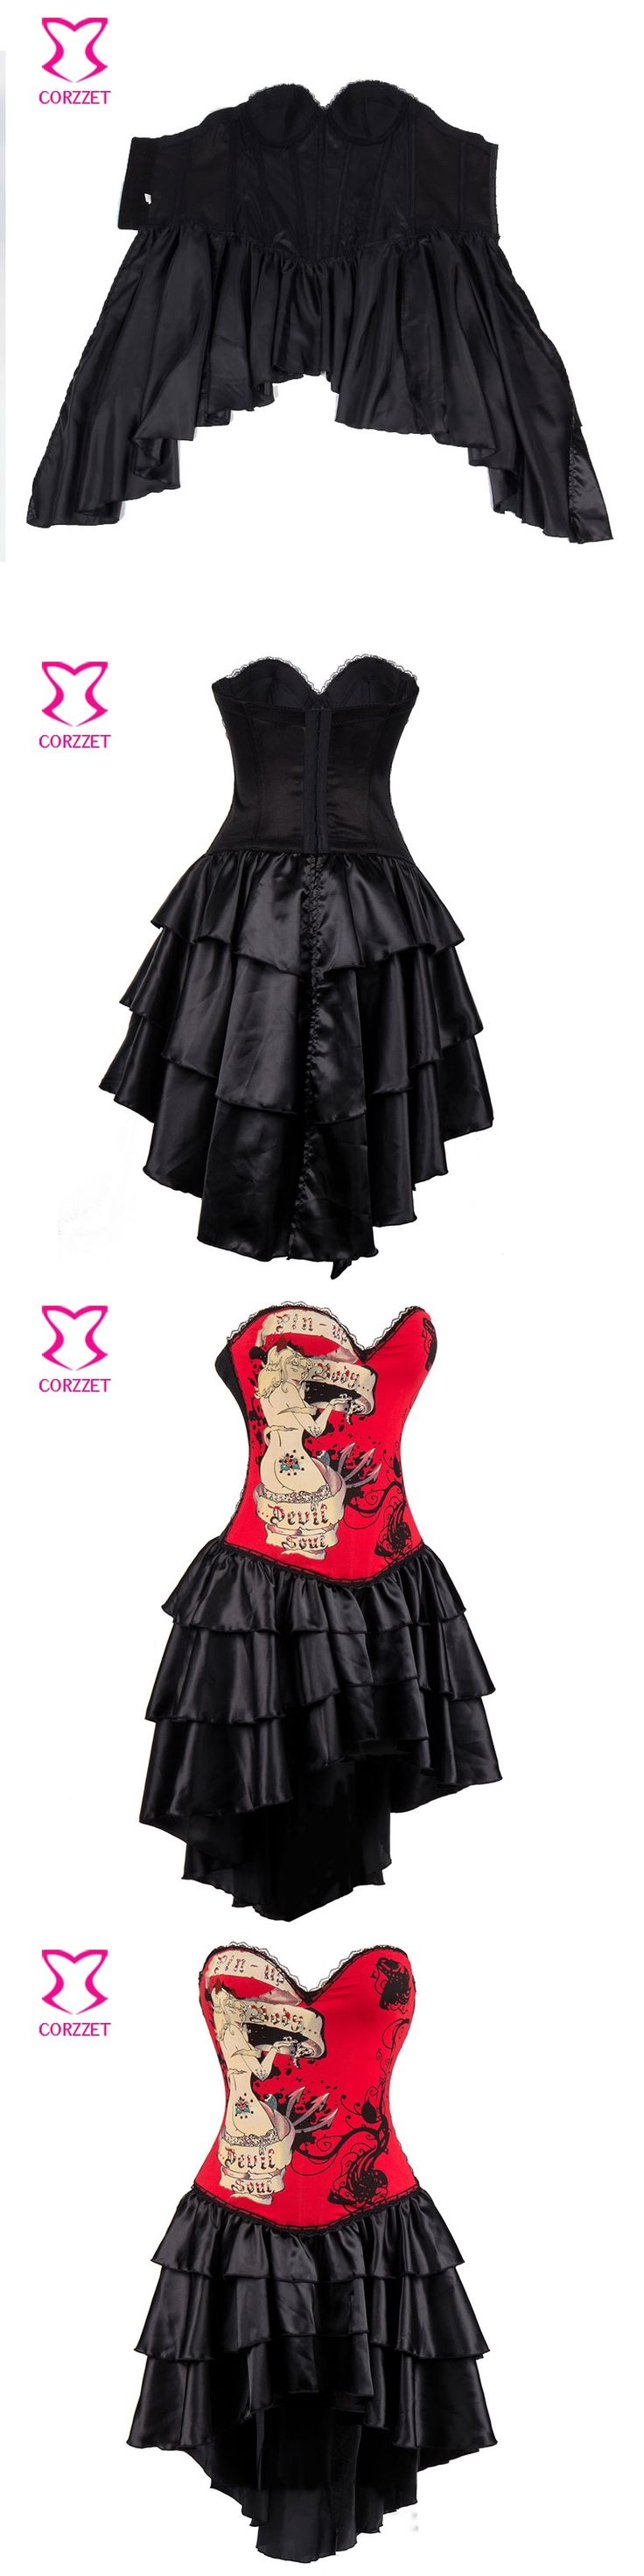 Steampunk Corsets Dress Vintage Bustier Top Gothic Overbust victorian Dress Steampunk Clothing burlesque costume Gothic Skirt